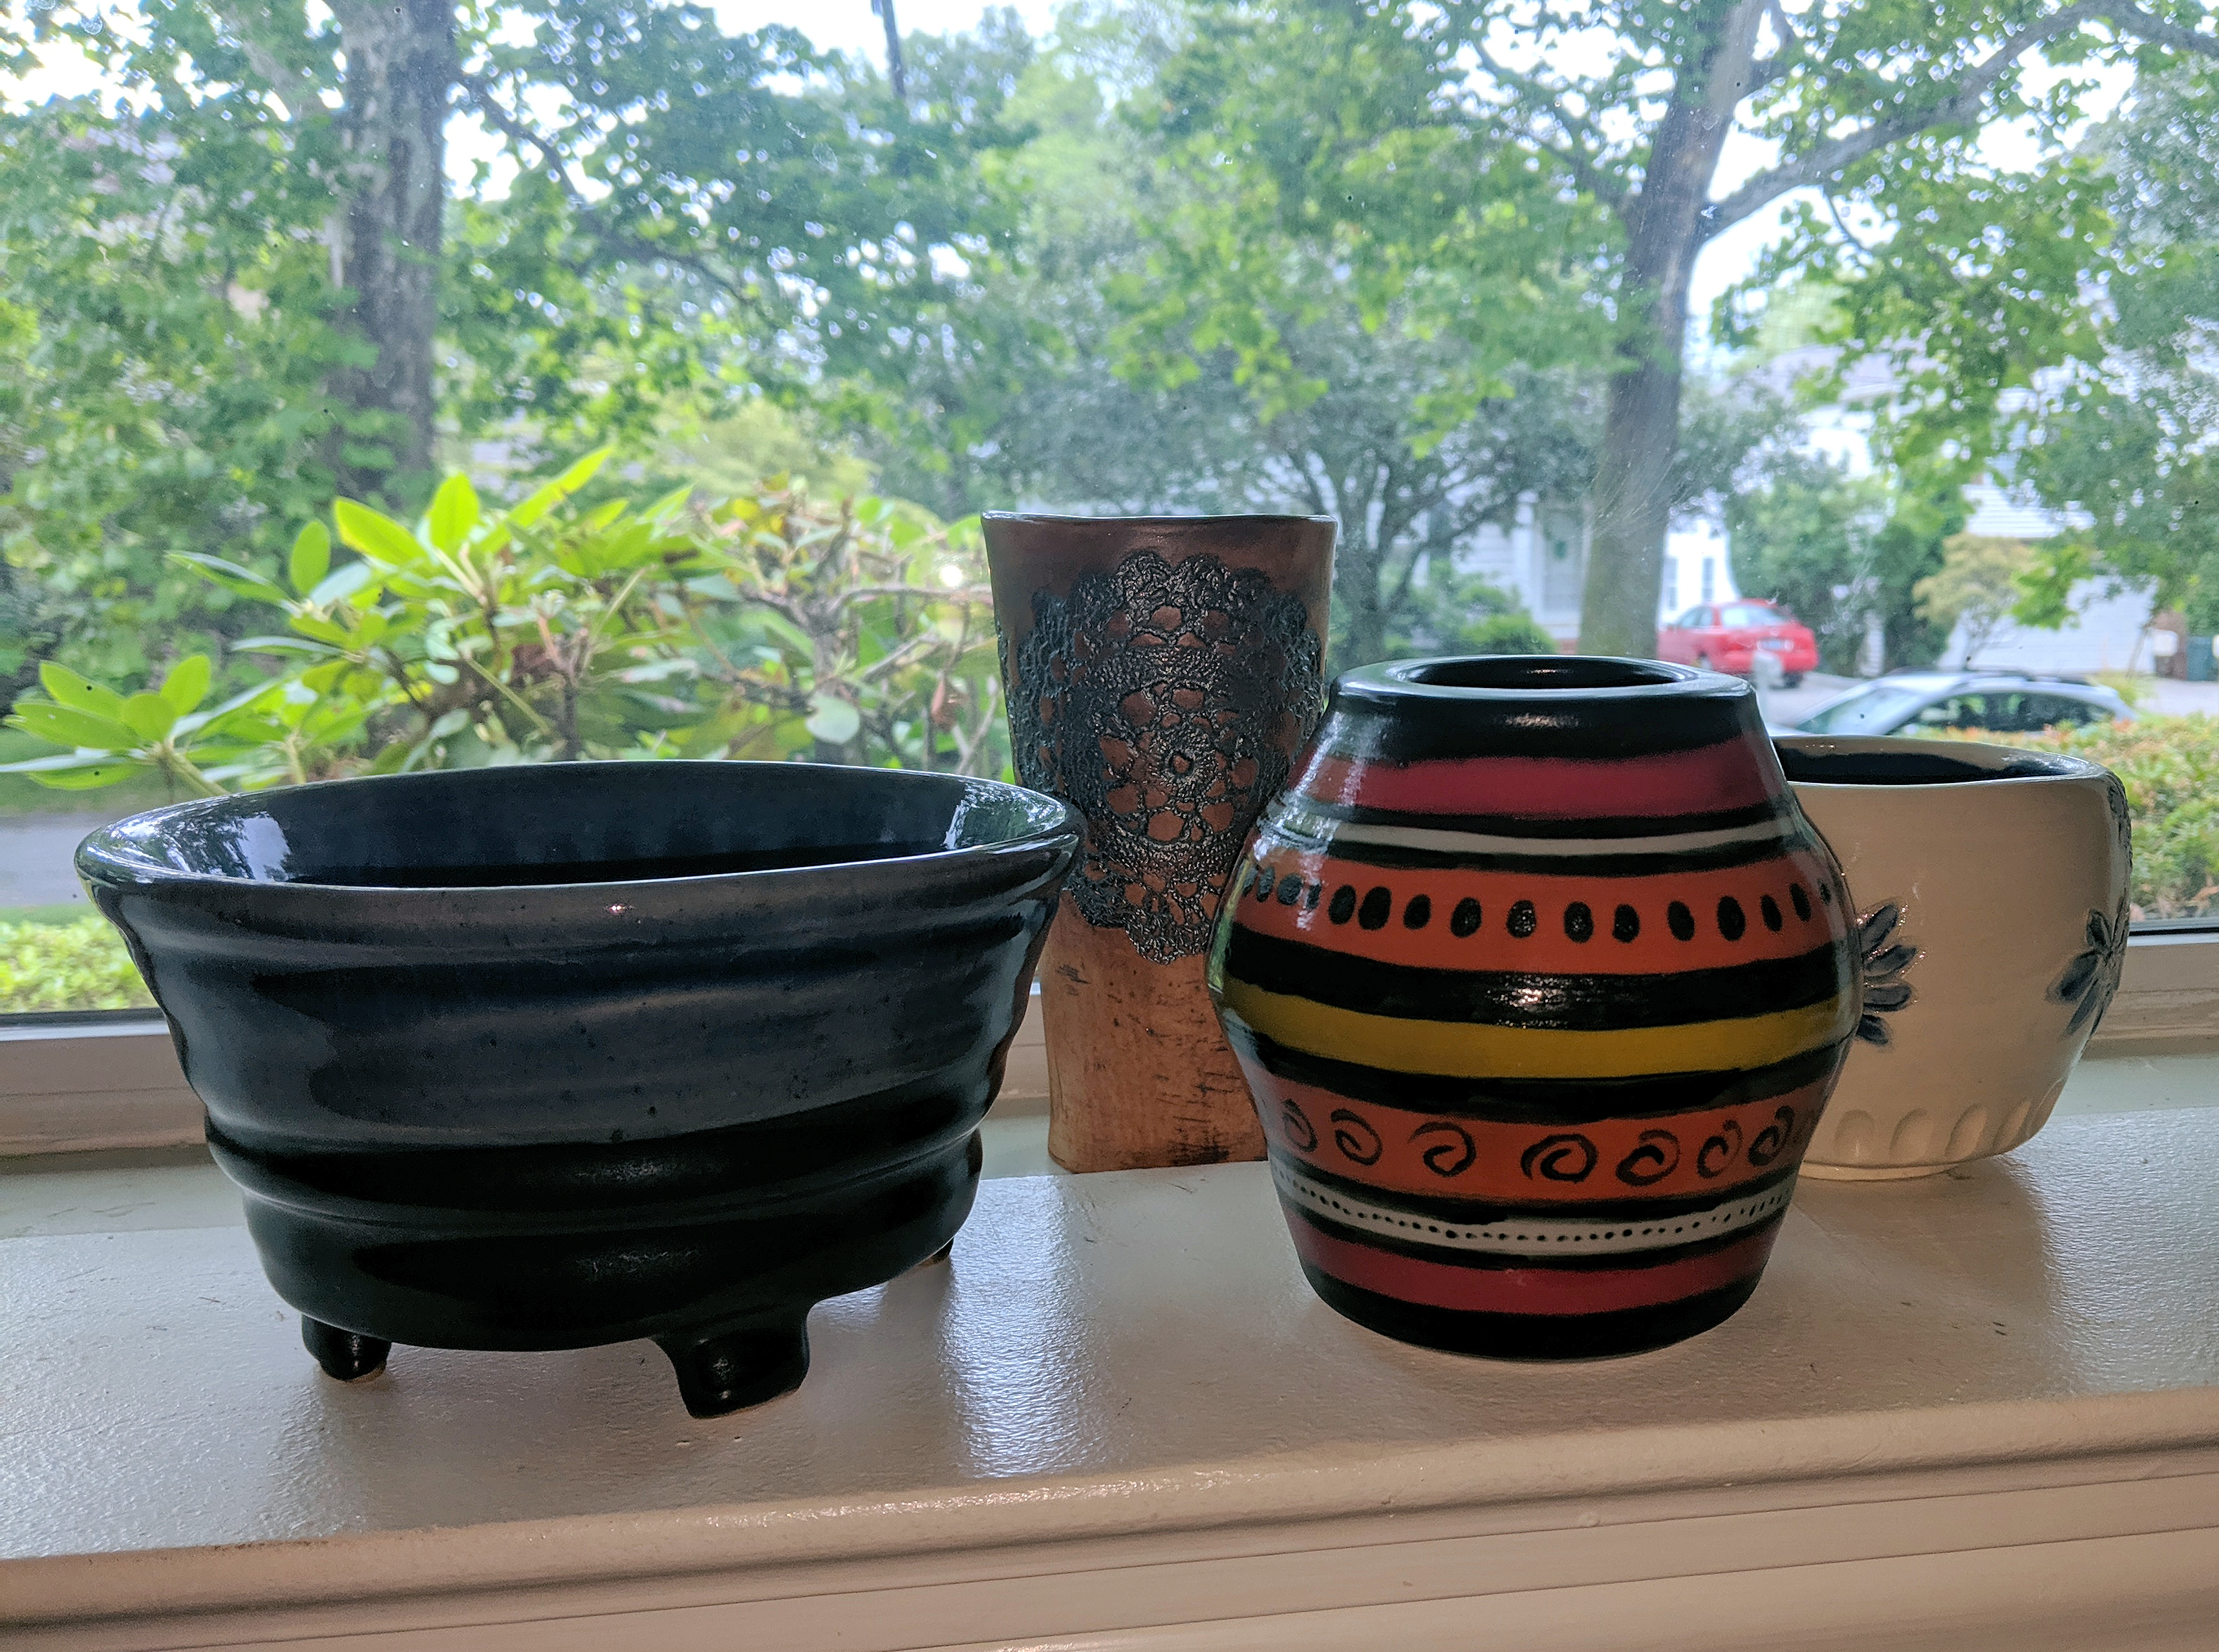 Four key tips to effective leadership that I learned from the potter's wheel